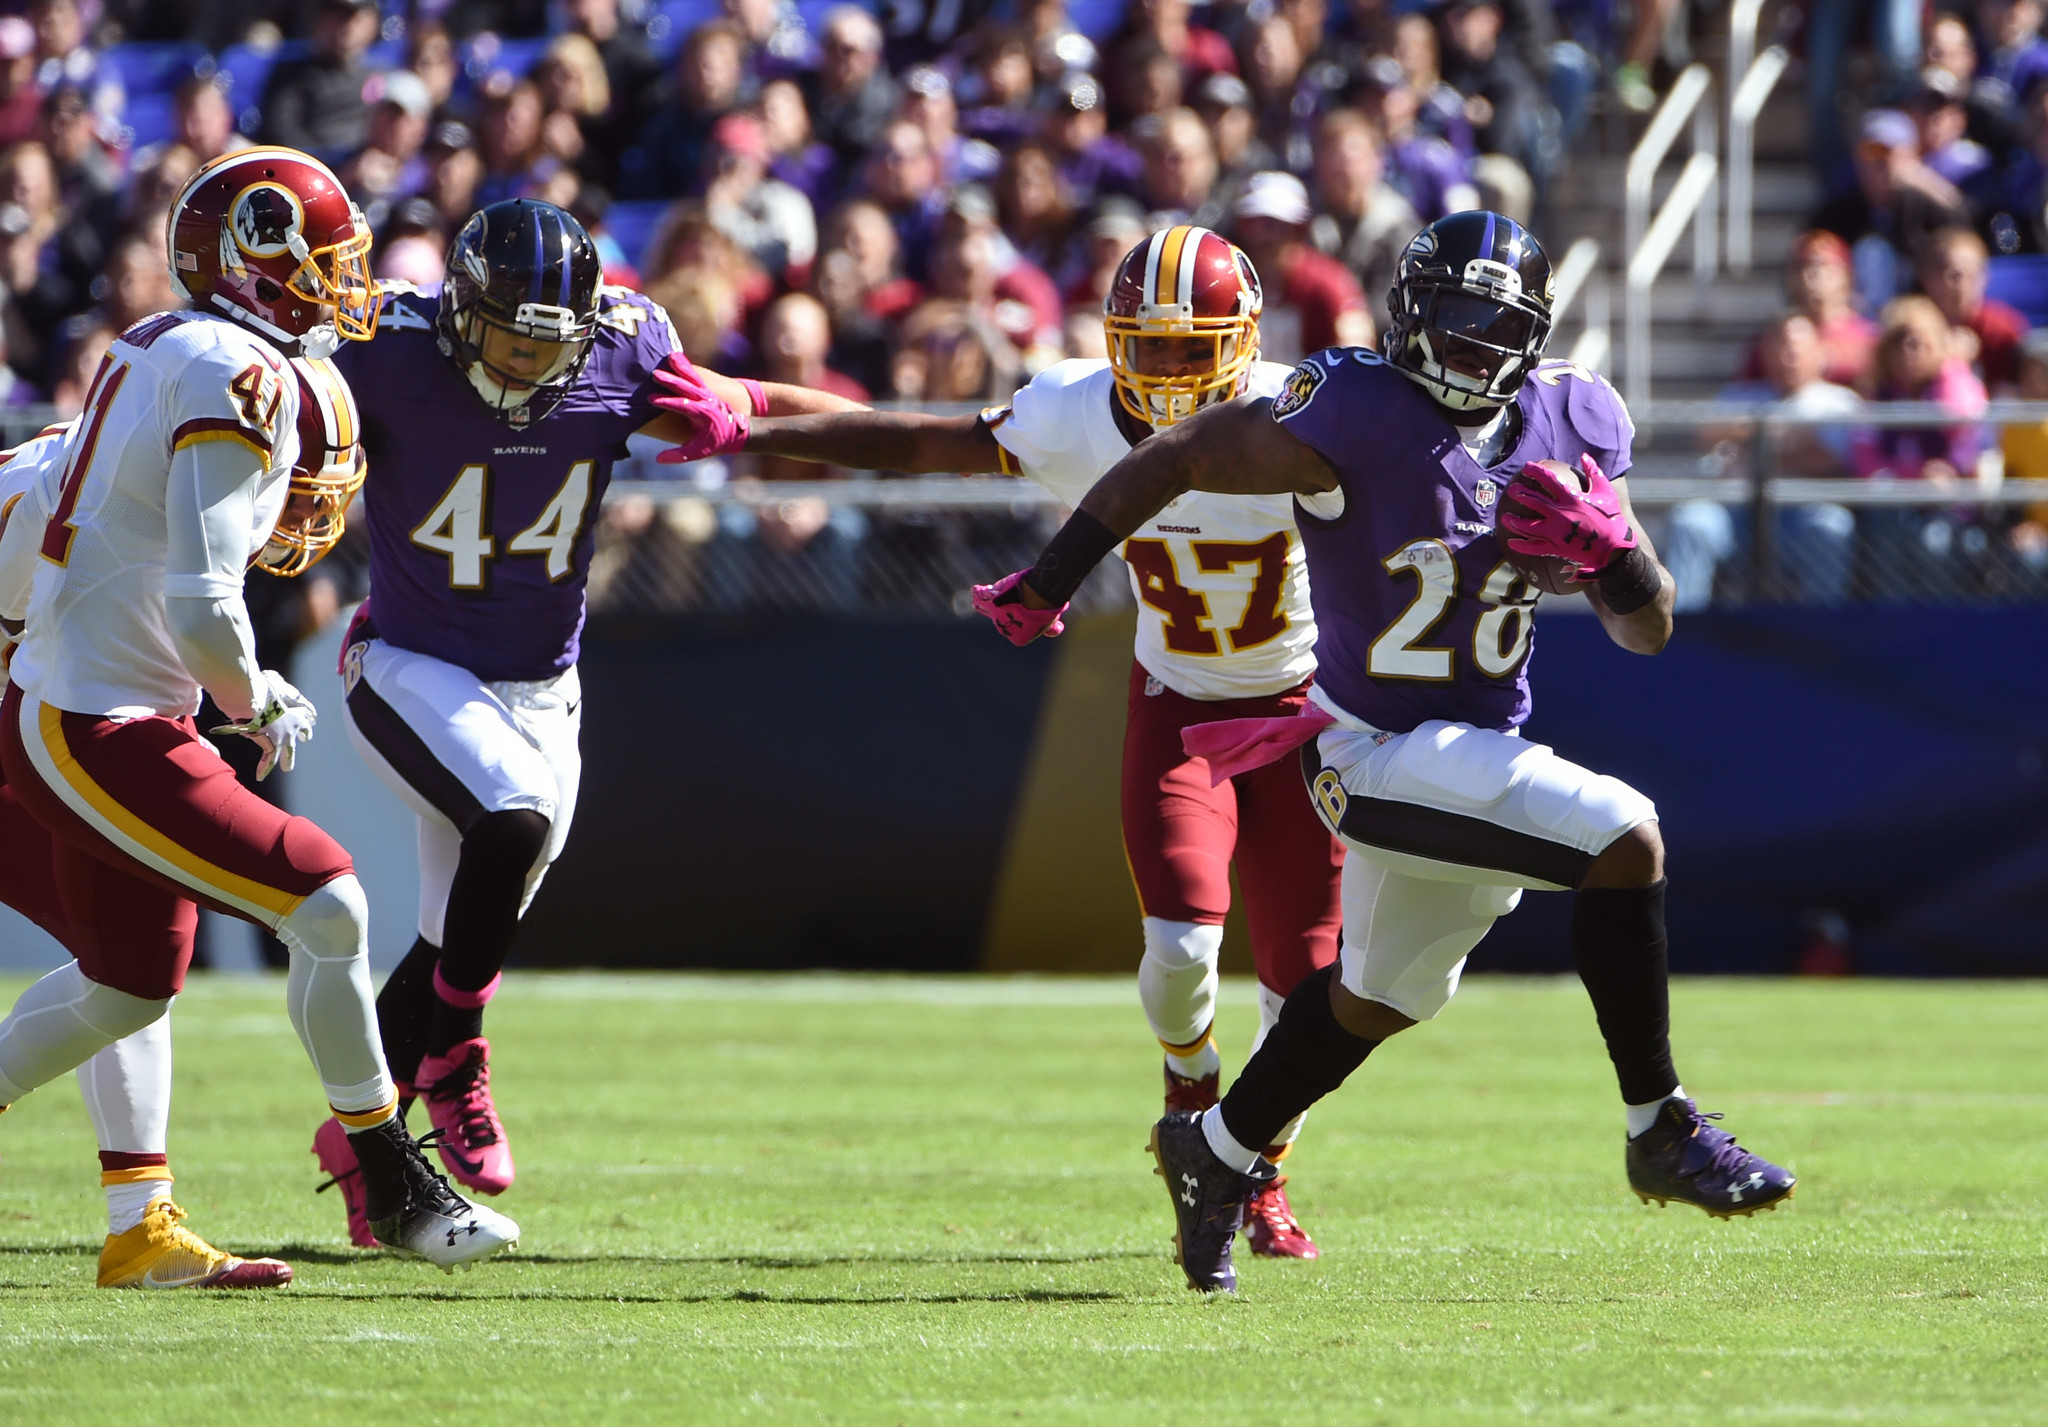 Bal-5-things-we-learned-from-the-ravens-16-10-loss-to-the-redskins-20161009